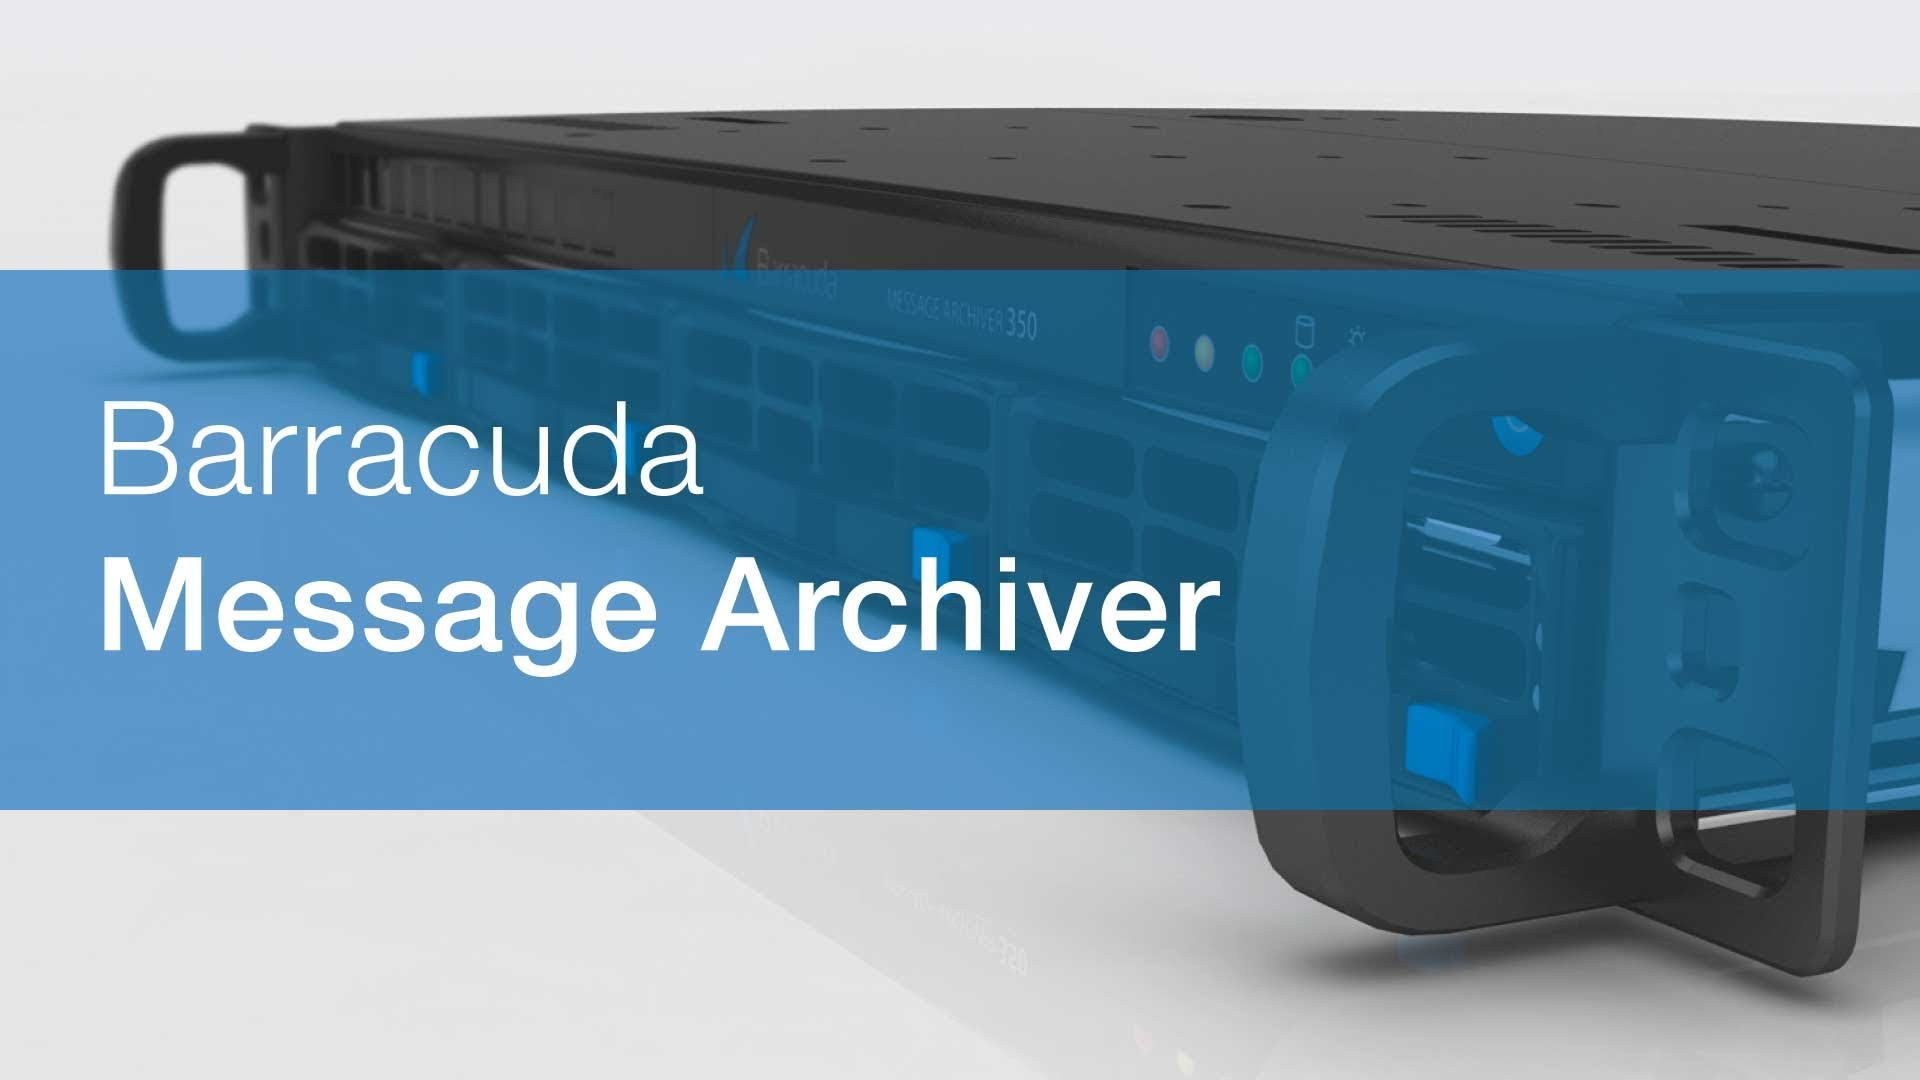 barracuda-message-archiver2